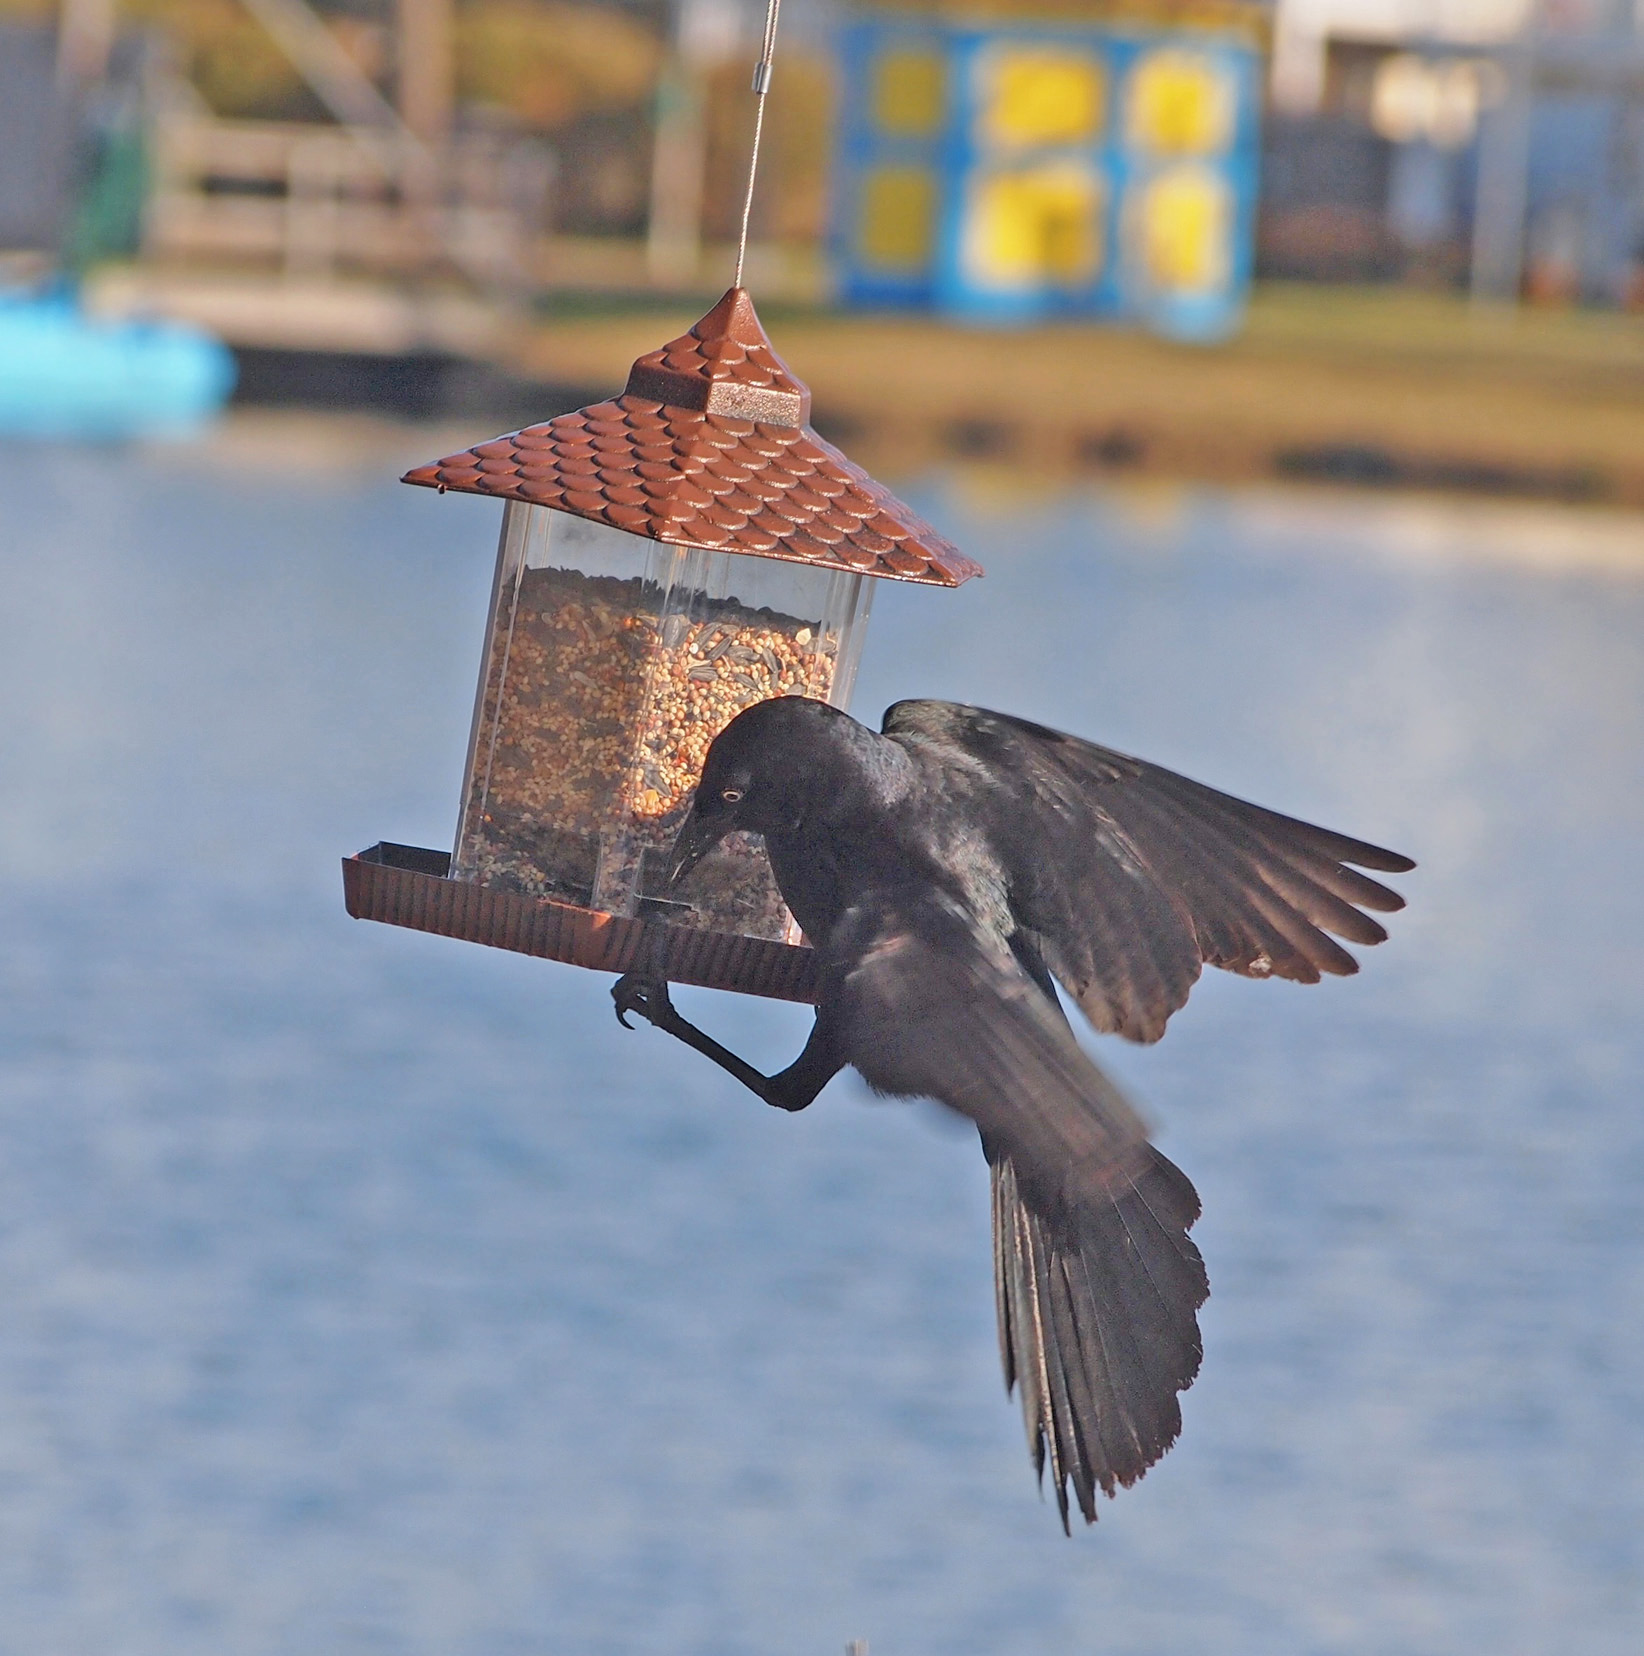 Male Boat-tailed Grackle attempting to use a bird feeder ...  Male Boat-taile...